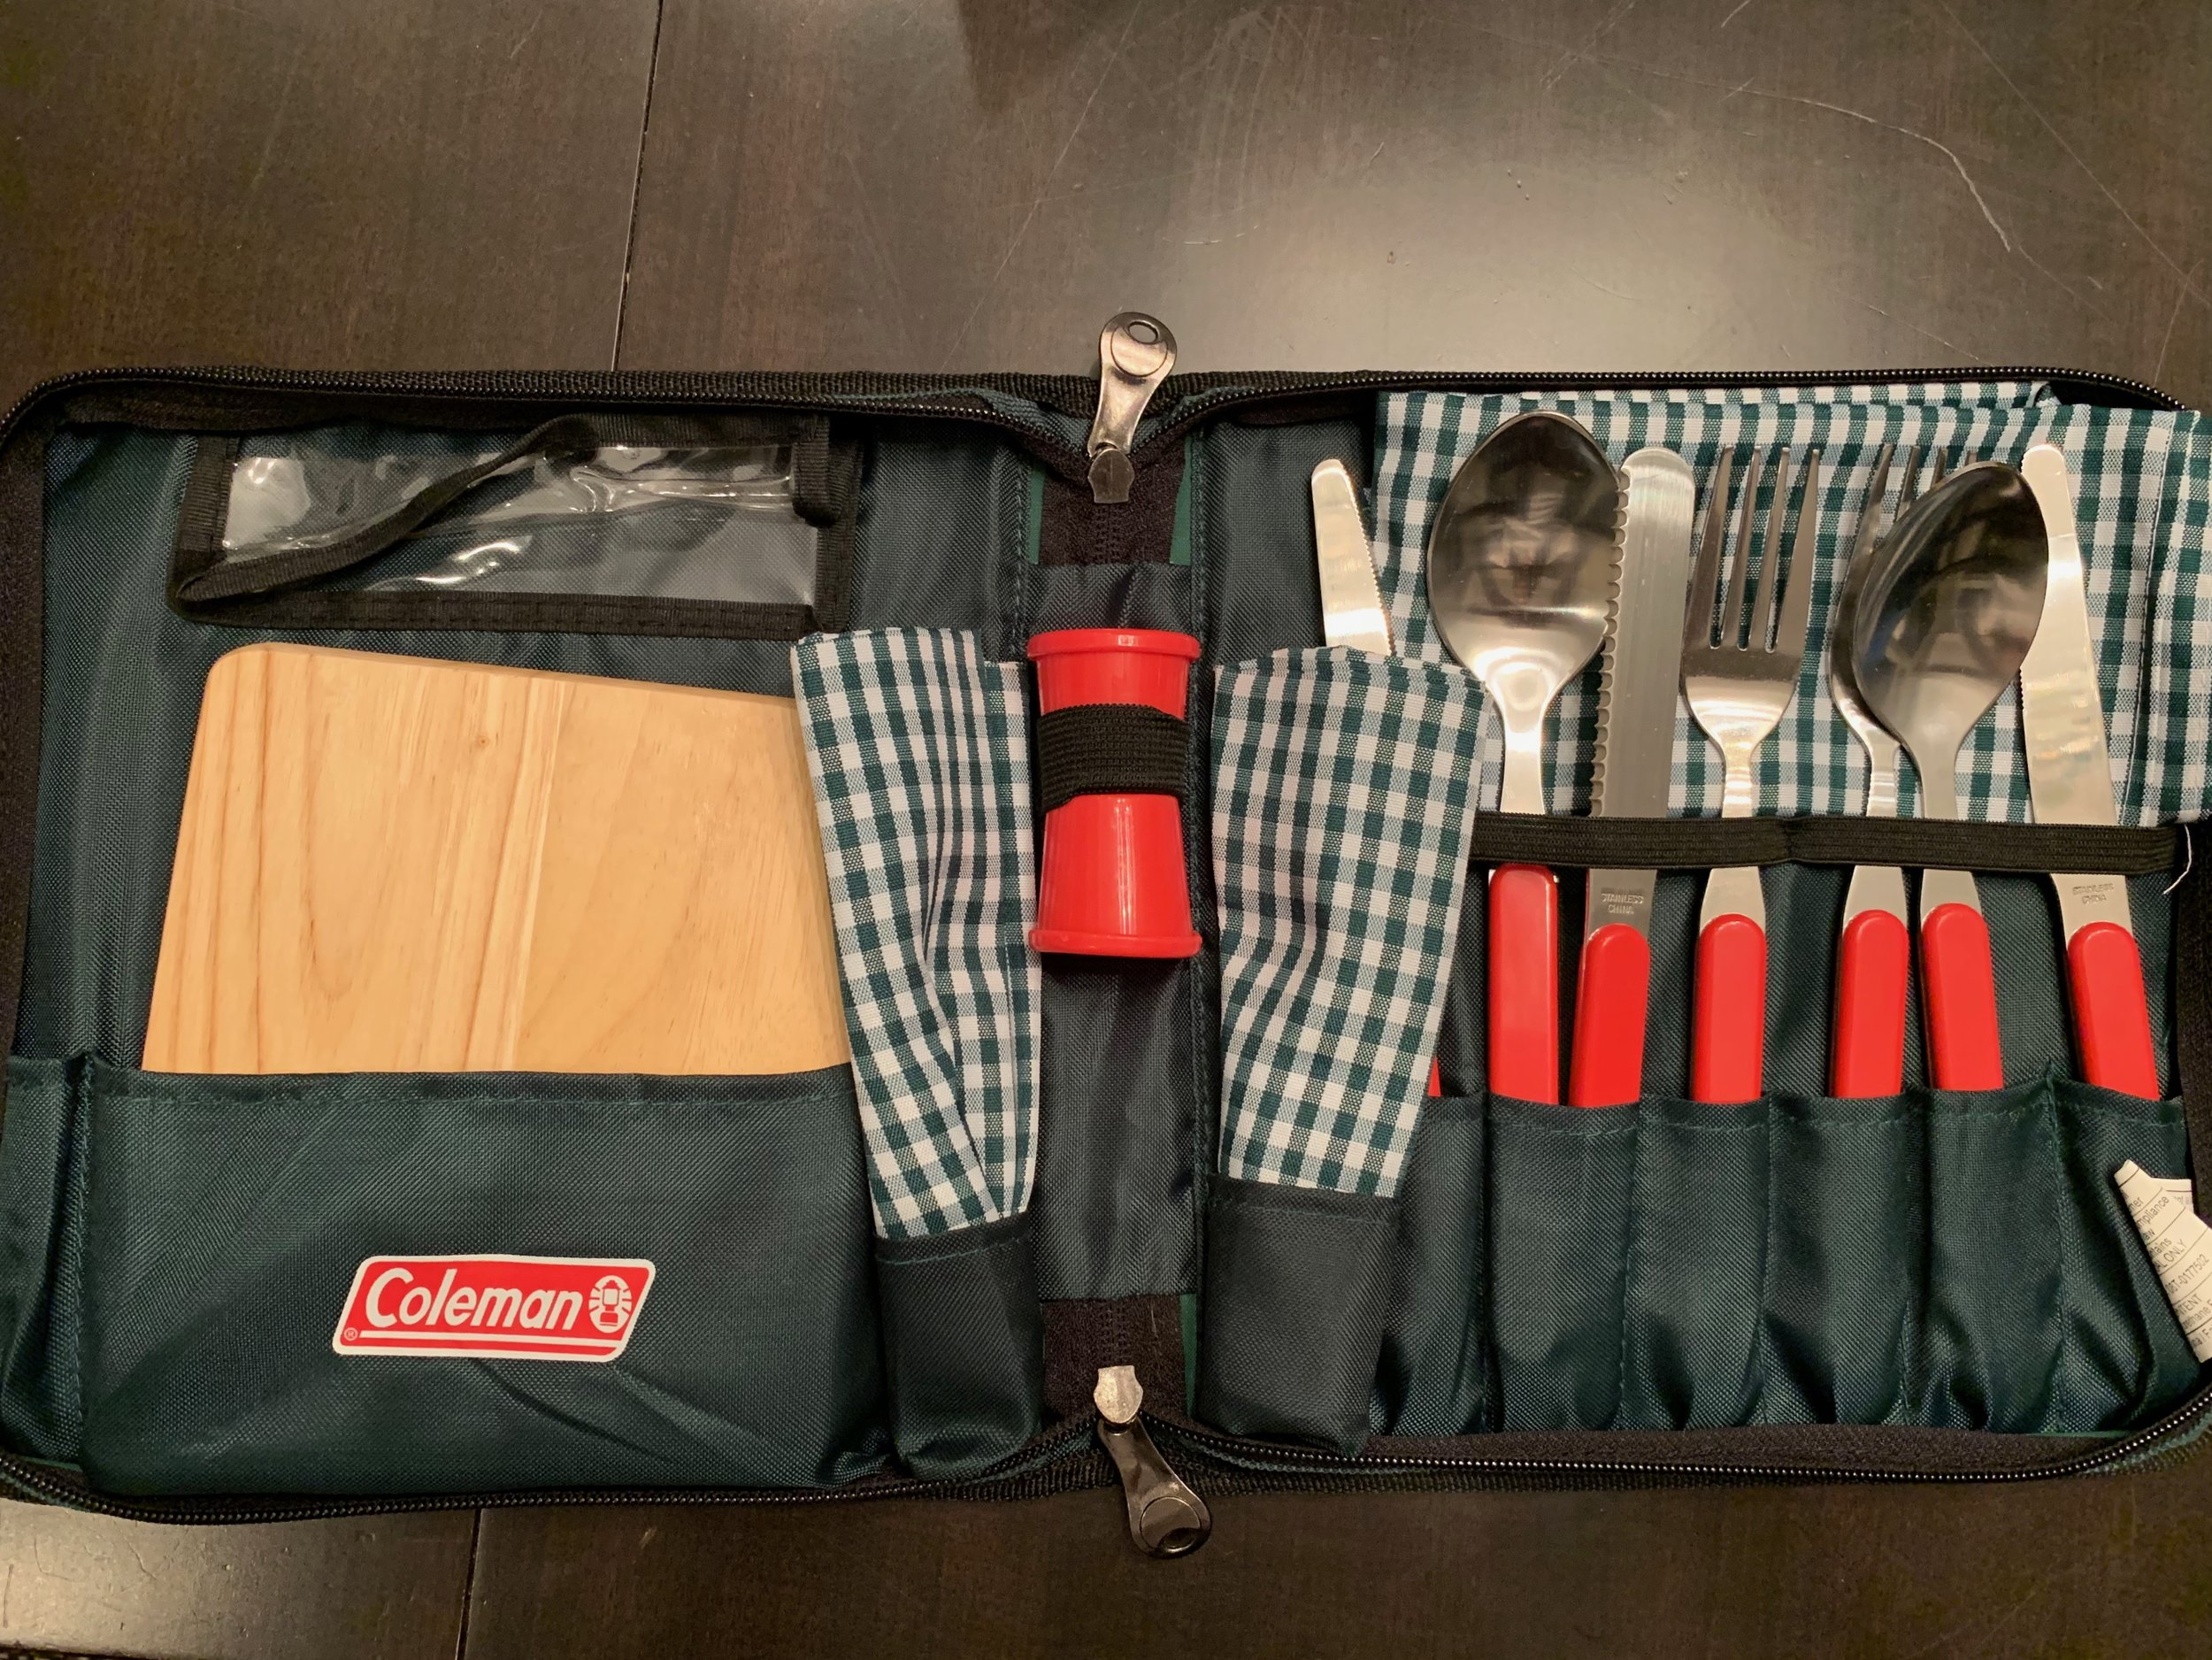 This kit has all we really need to cover the most basic tasks. Chopping board, two napkins, salt/pepper containers, two sets of flatware and serrated knife. This was an anniversary present from a lovely couple; both have since passed away. I think of them often when we use it.